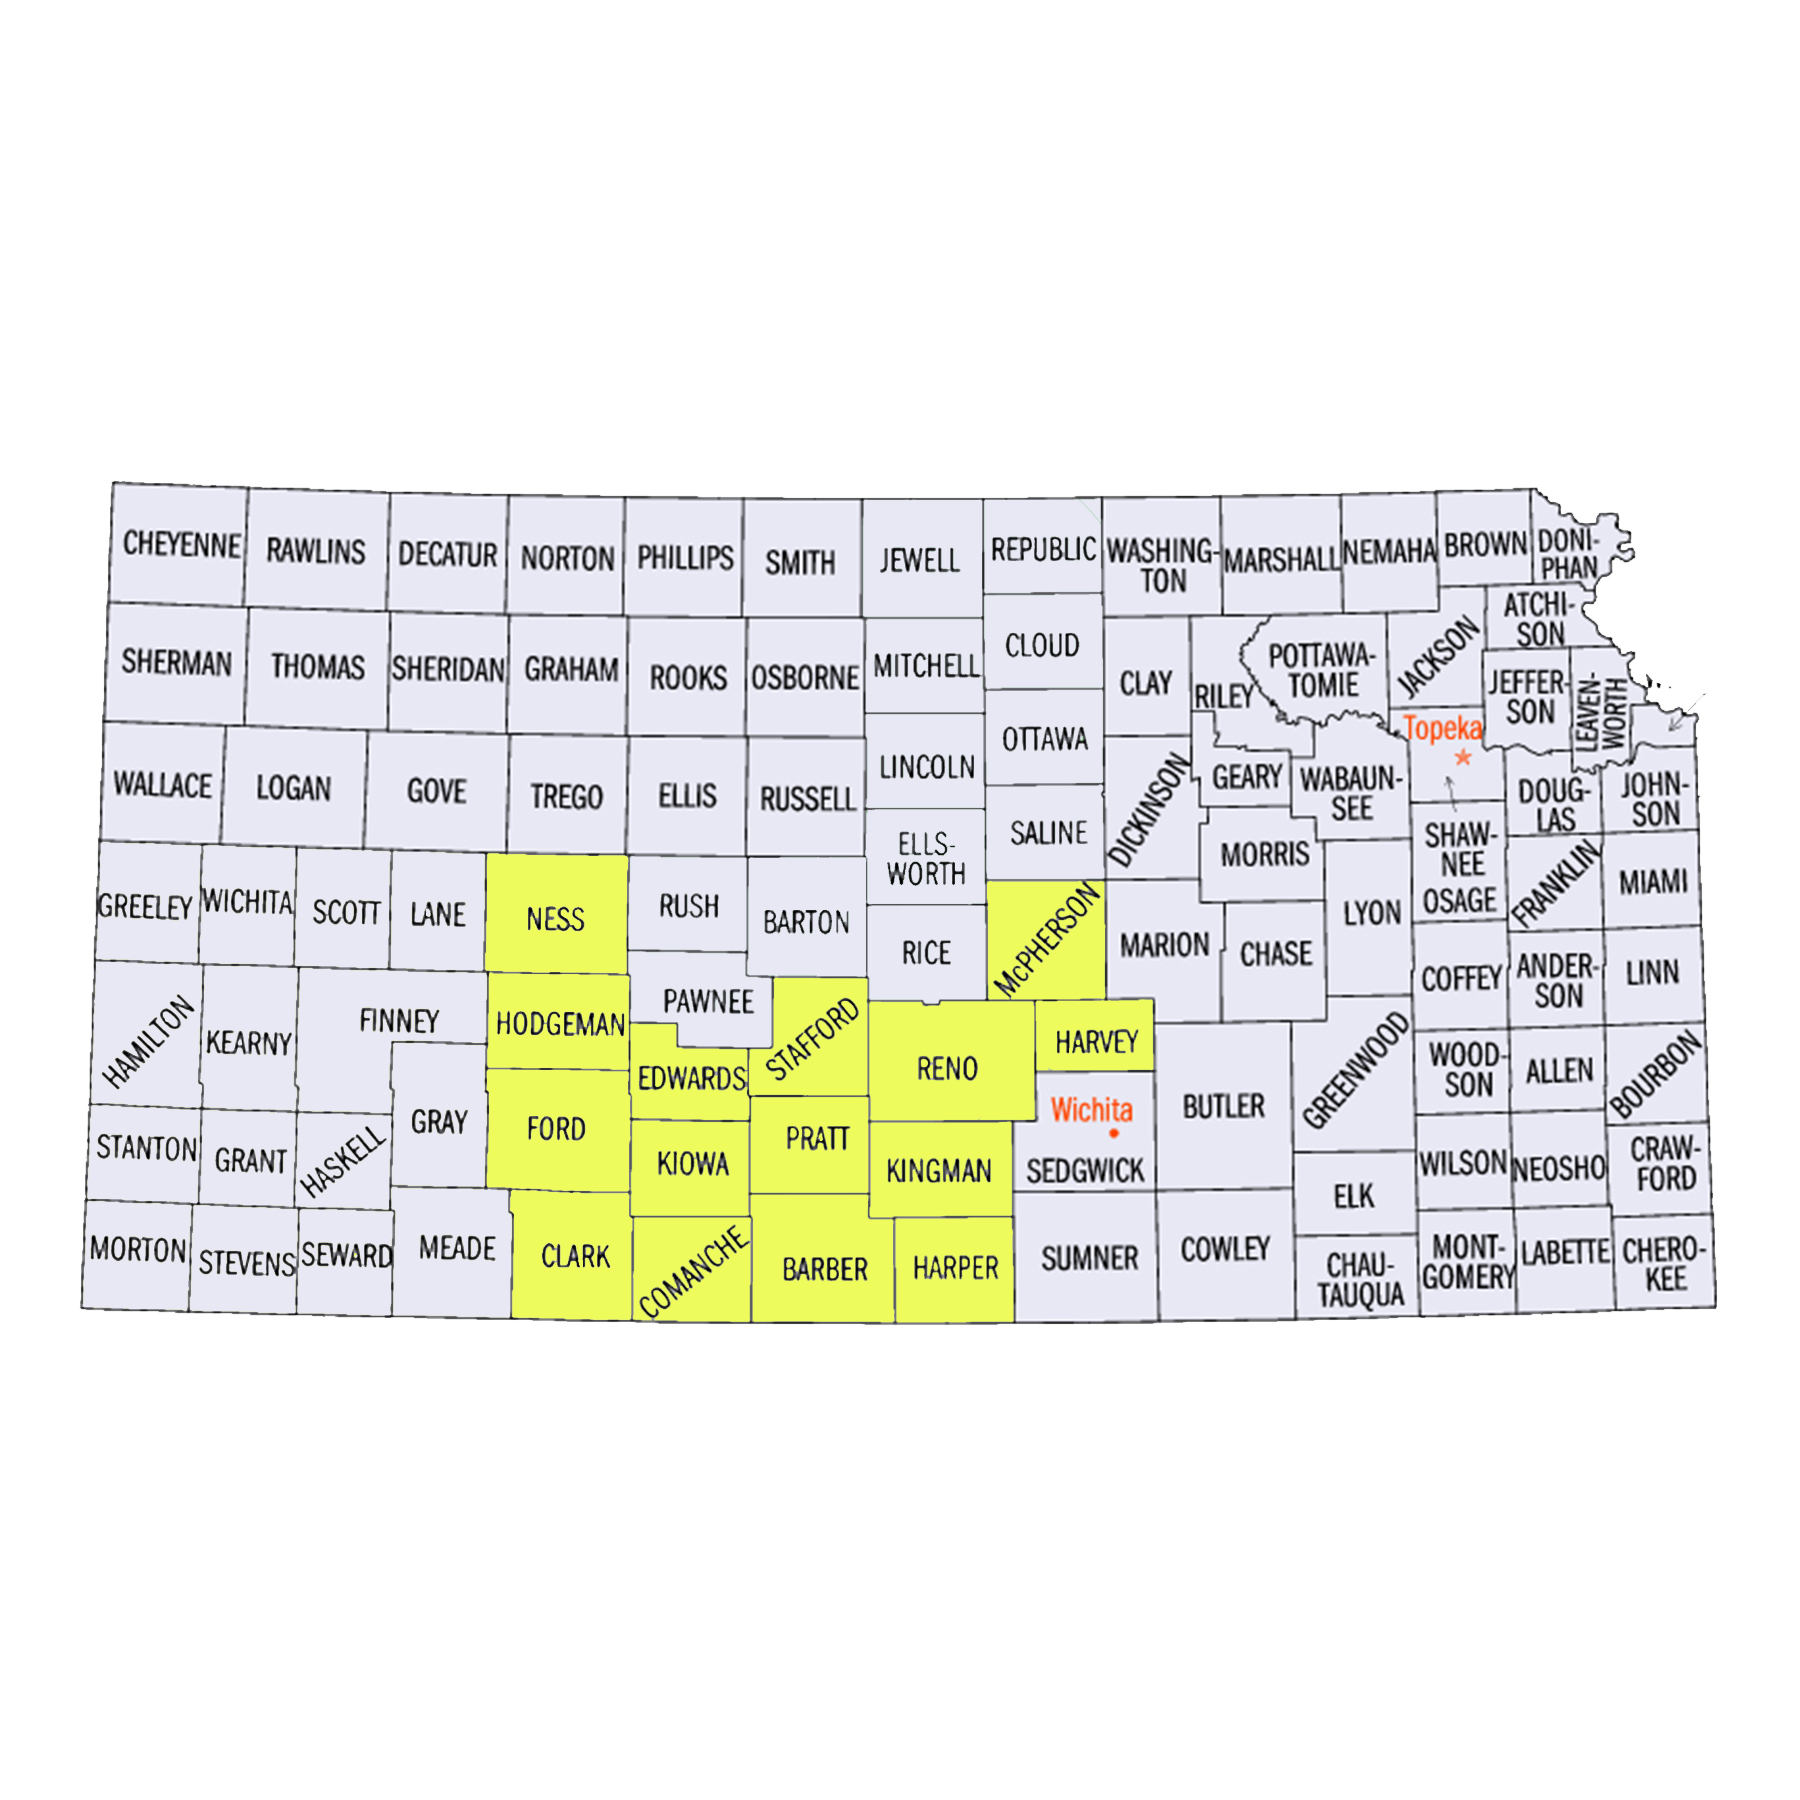 Barber County Clarke County Comanche County Edwards County Ford County Harper County Harvey County Hodgeman County Kingman County Kiowa County McPherson County Ness County Pratt County Reno County Stafford County